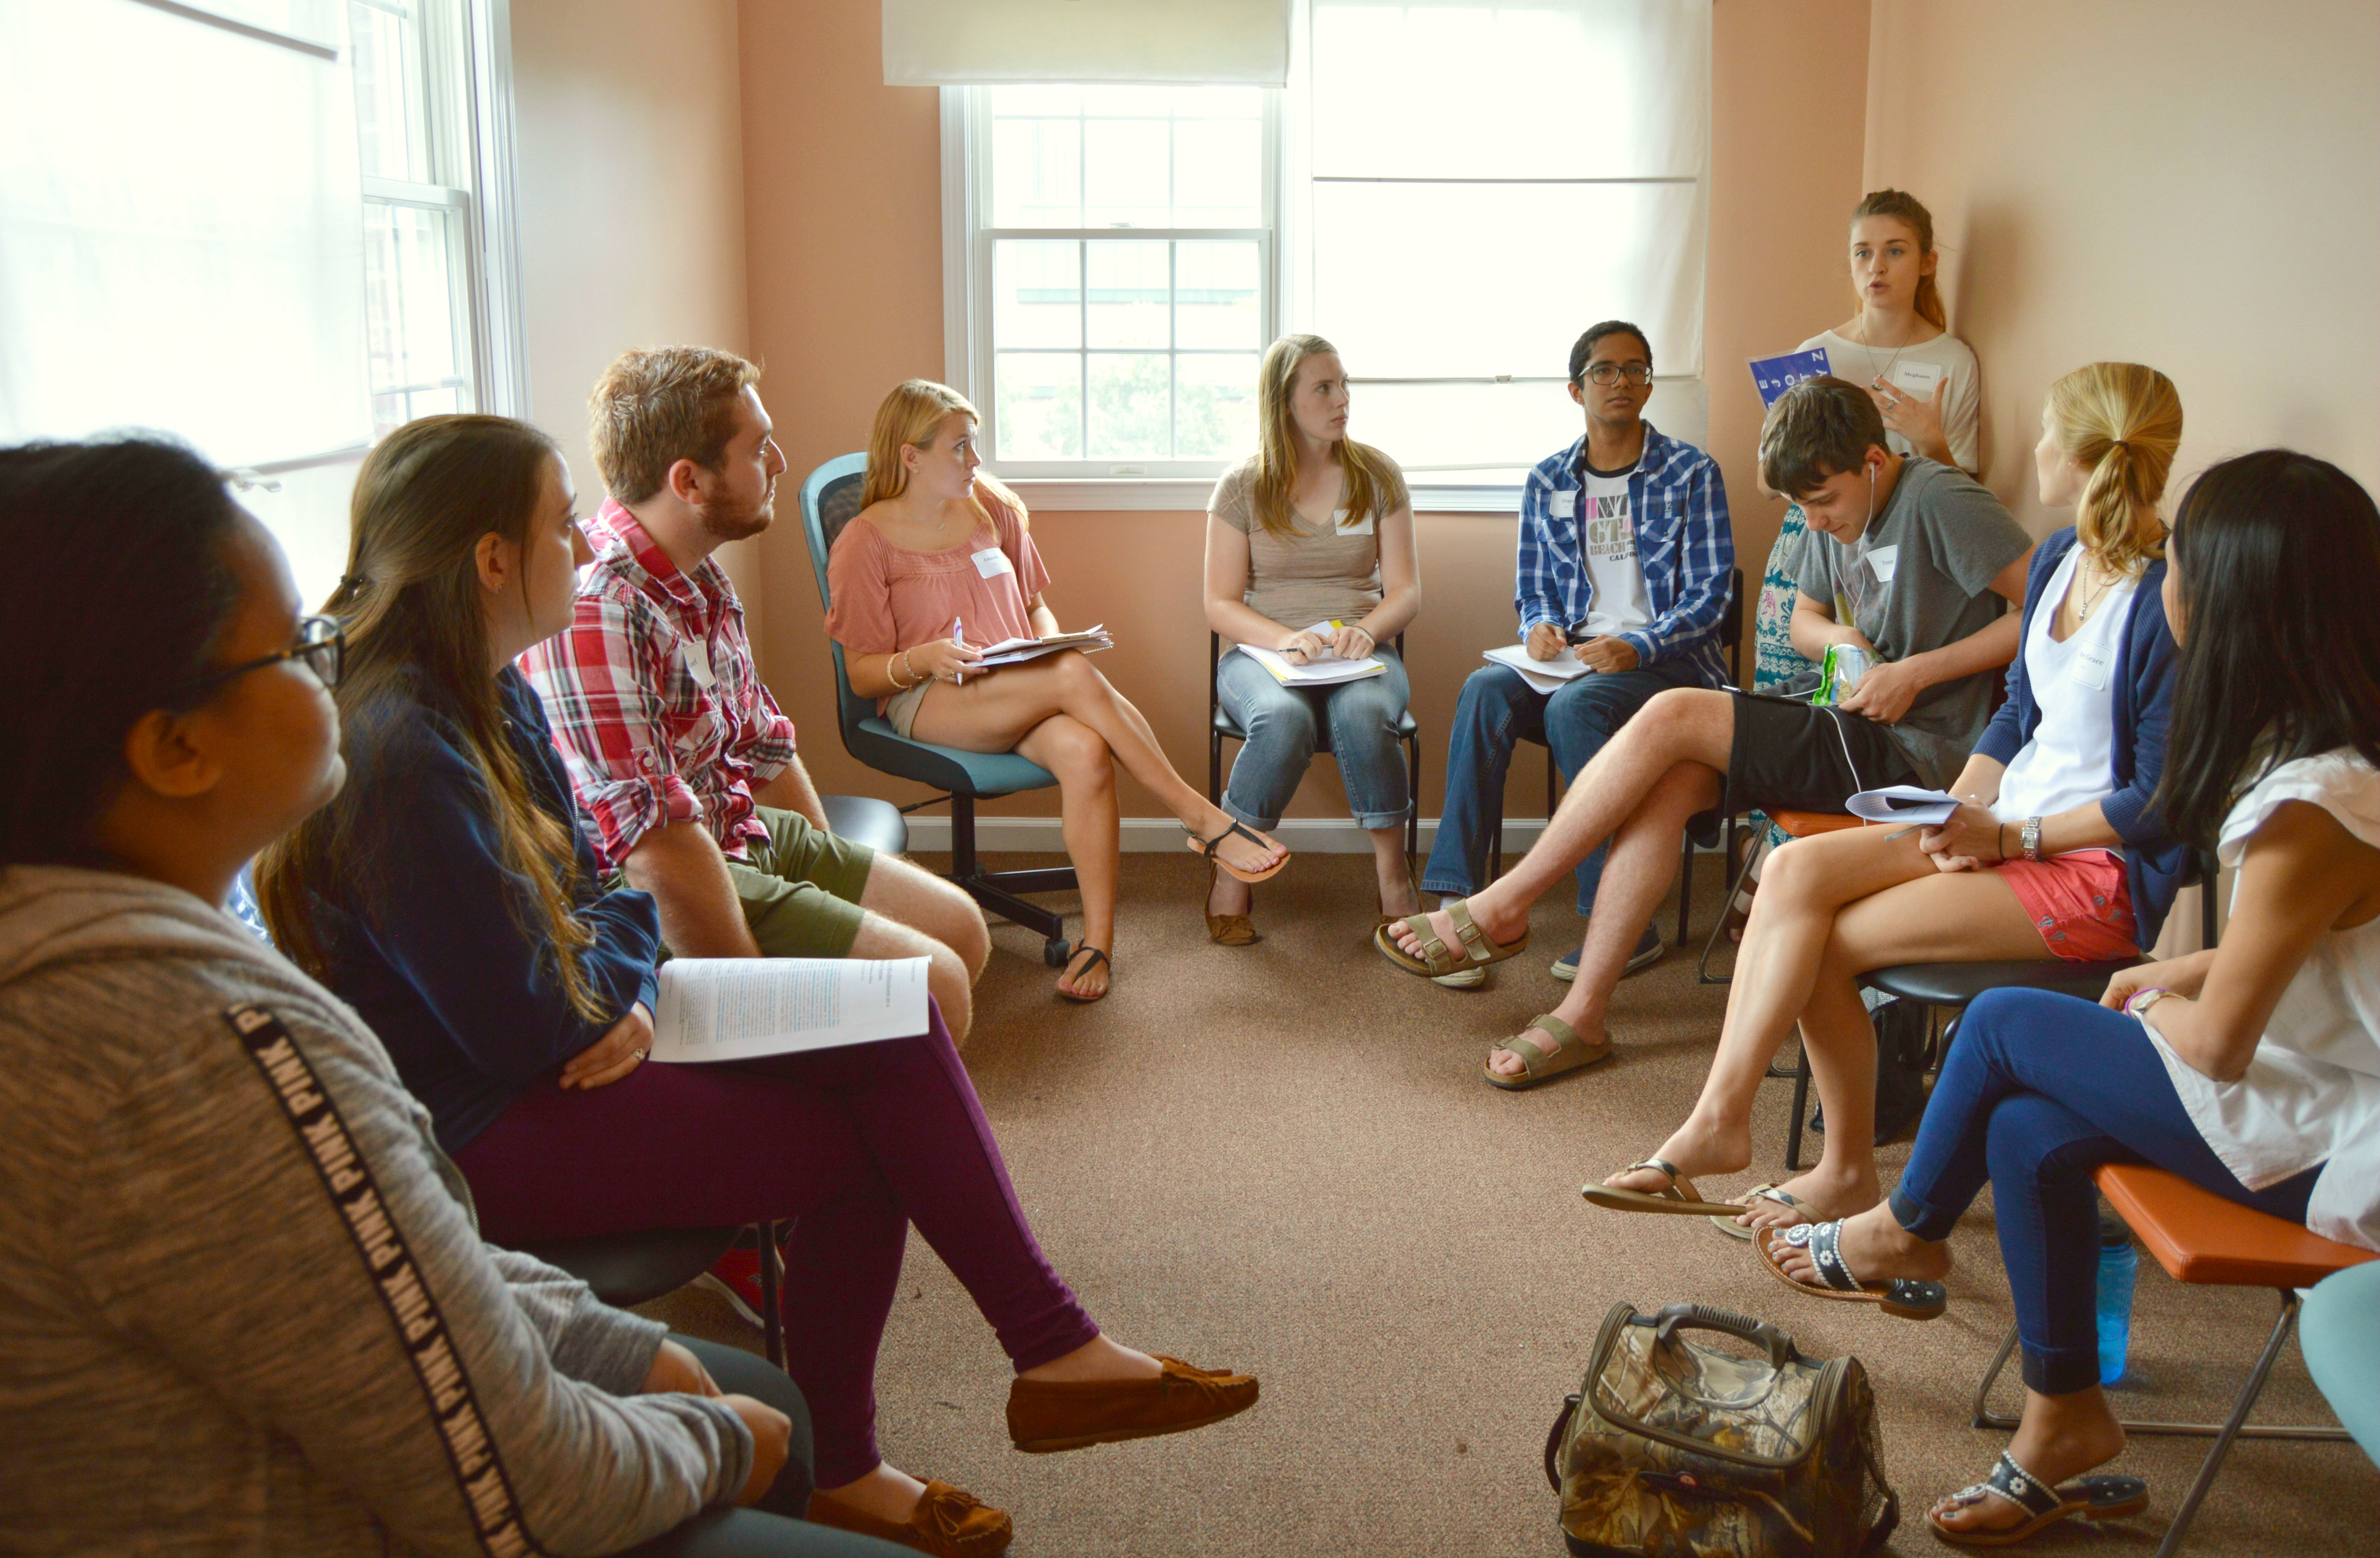 The students had their first meeting Sept. 17 in Herndon. (Photo courtesy of Tiffany Hwang)